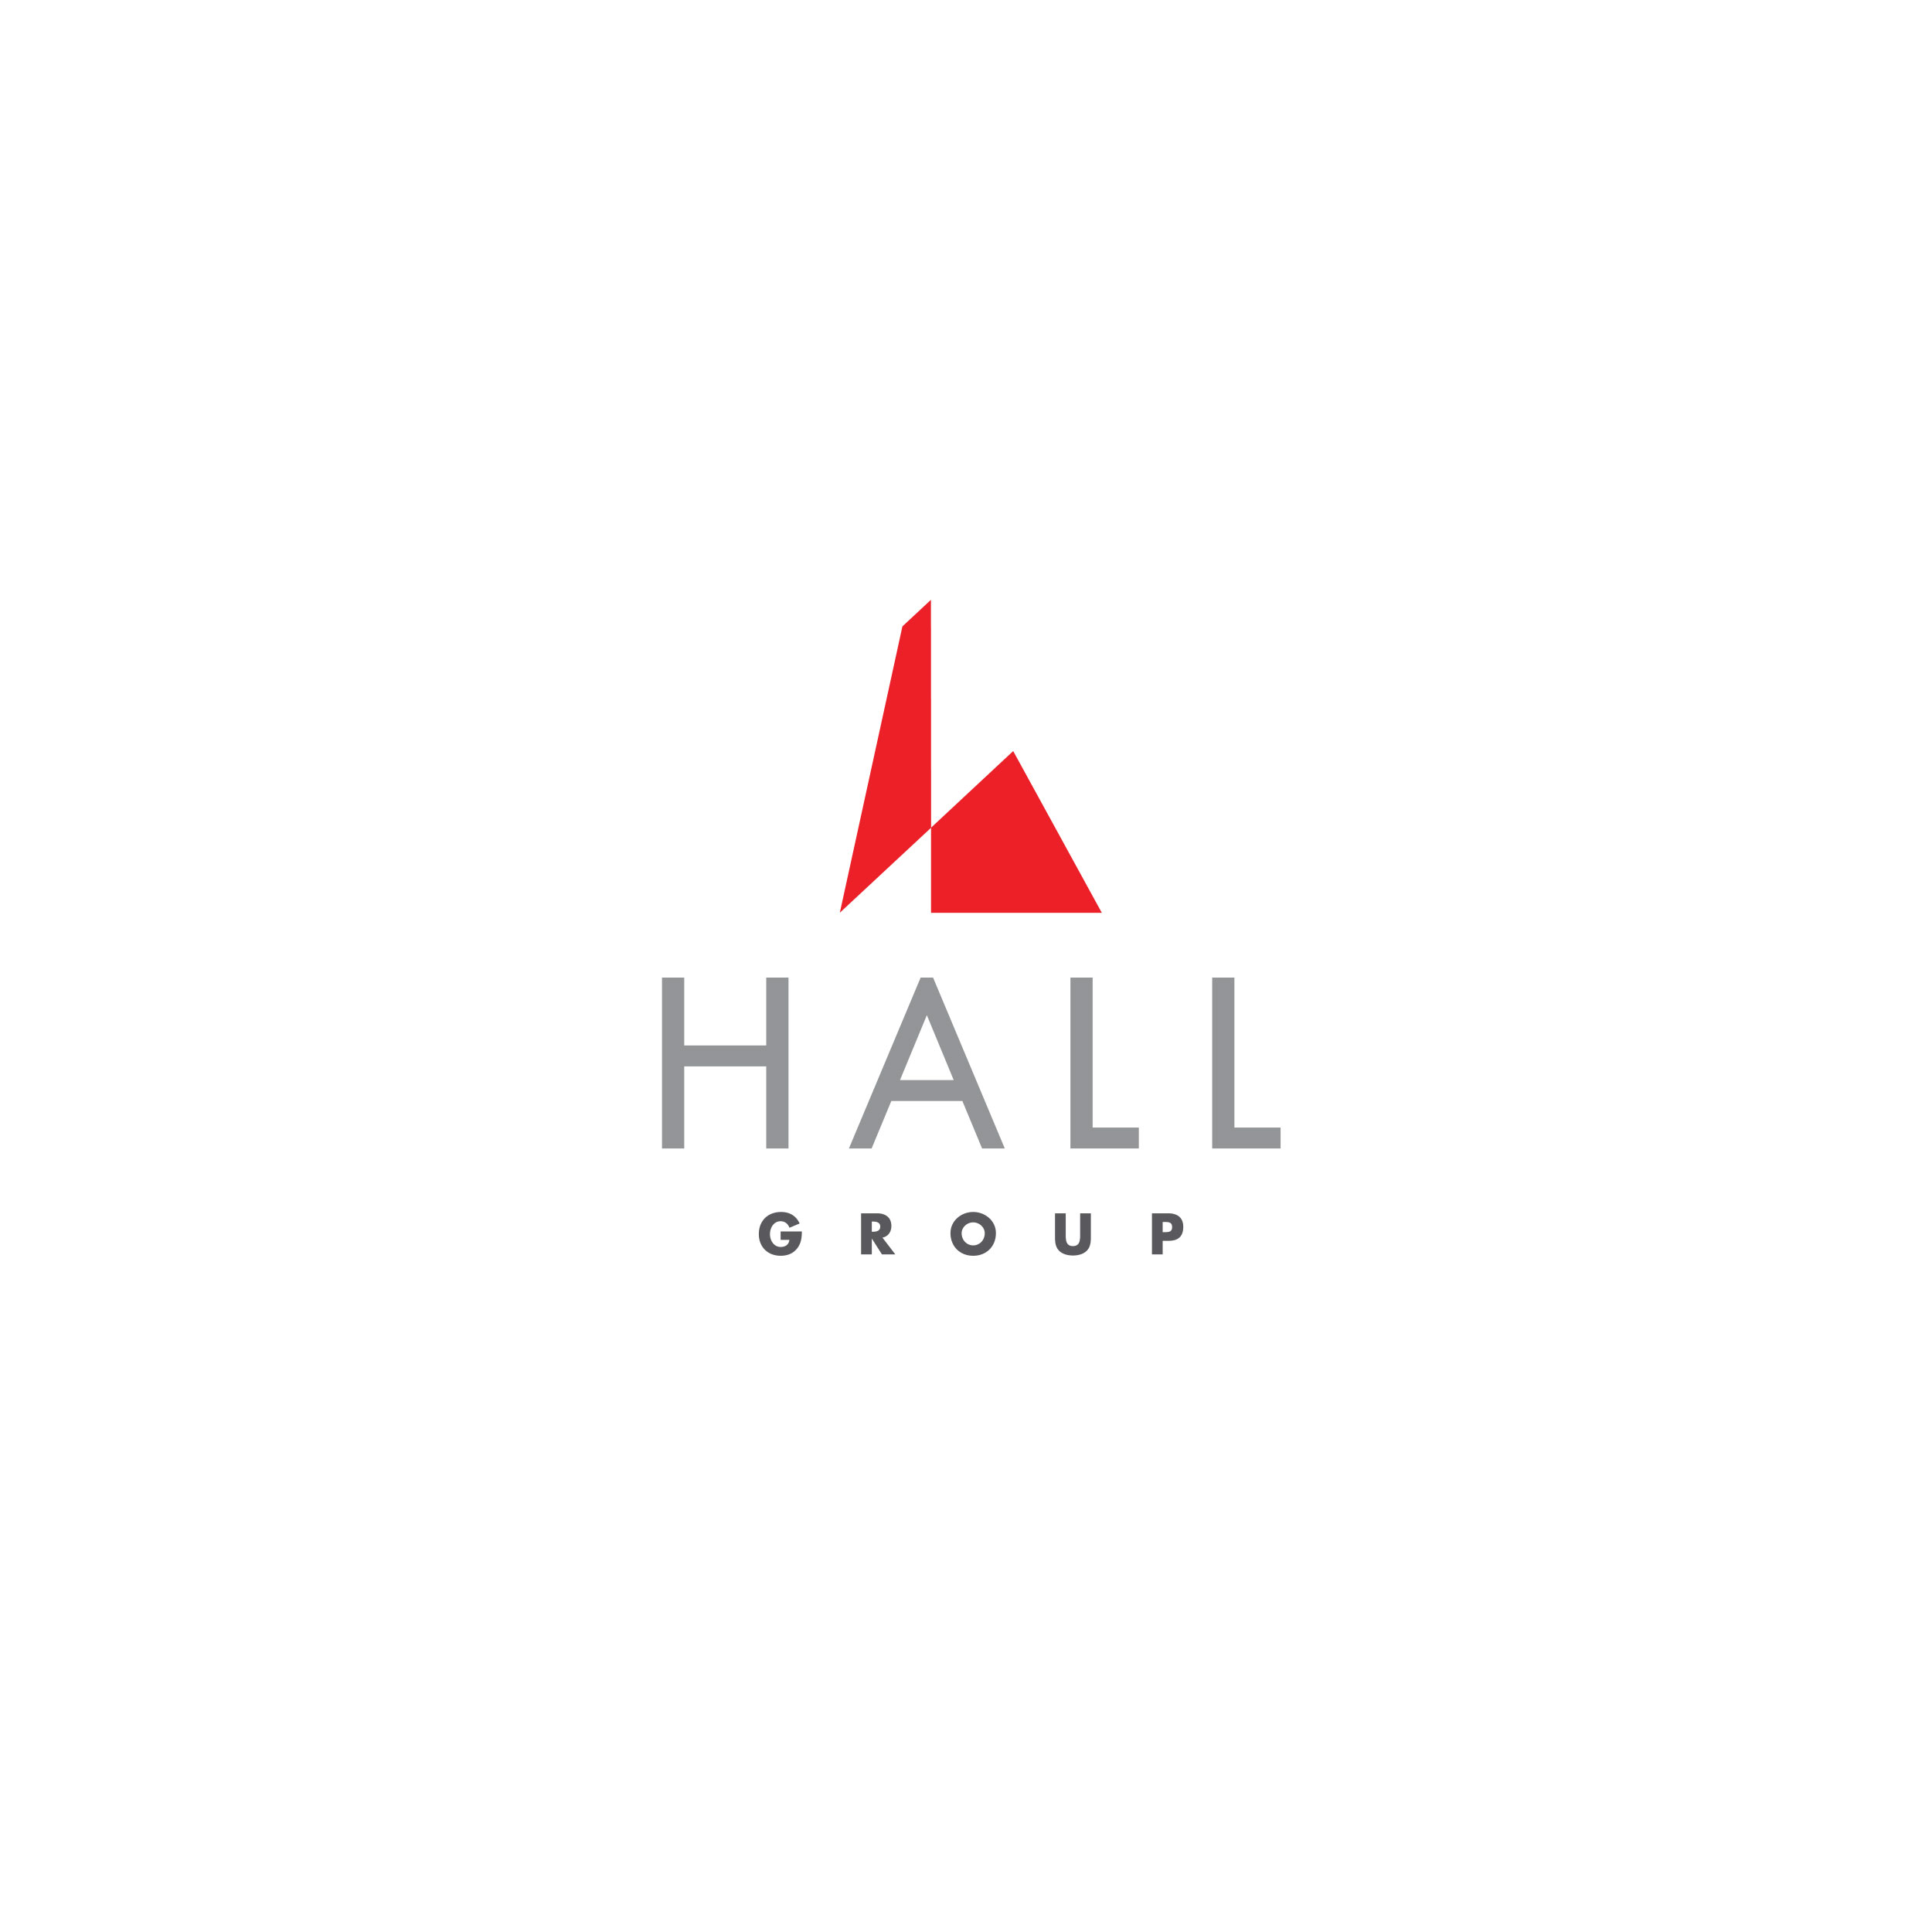 ND-hallgroup-logo.jpg